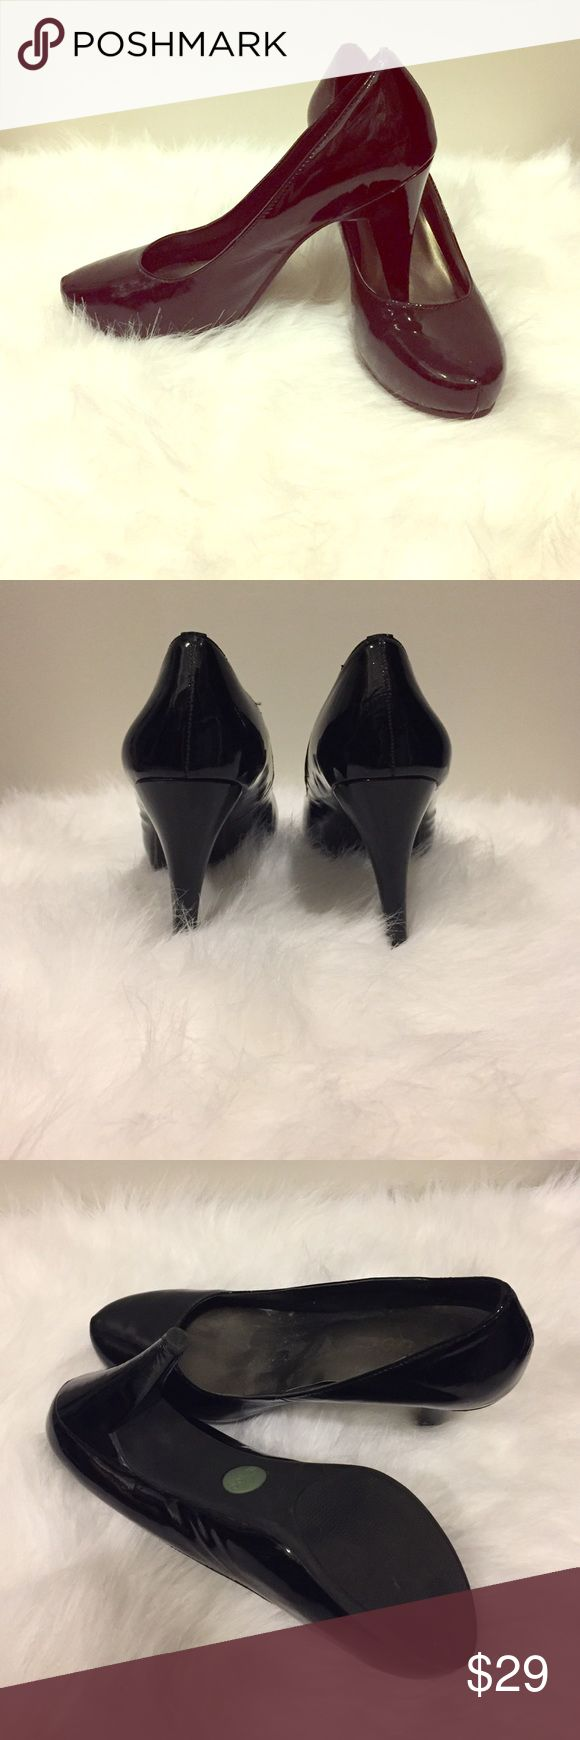 Me Too Black Patent Shoes Like new I only wore once! Size 8M. Black Patent High Heel me too Shoes Heels